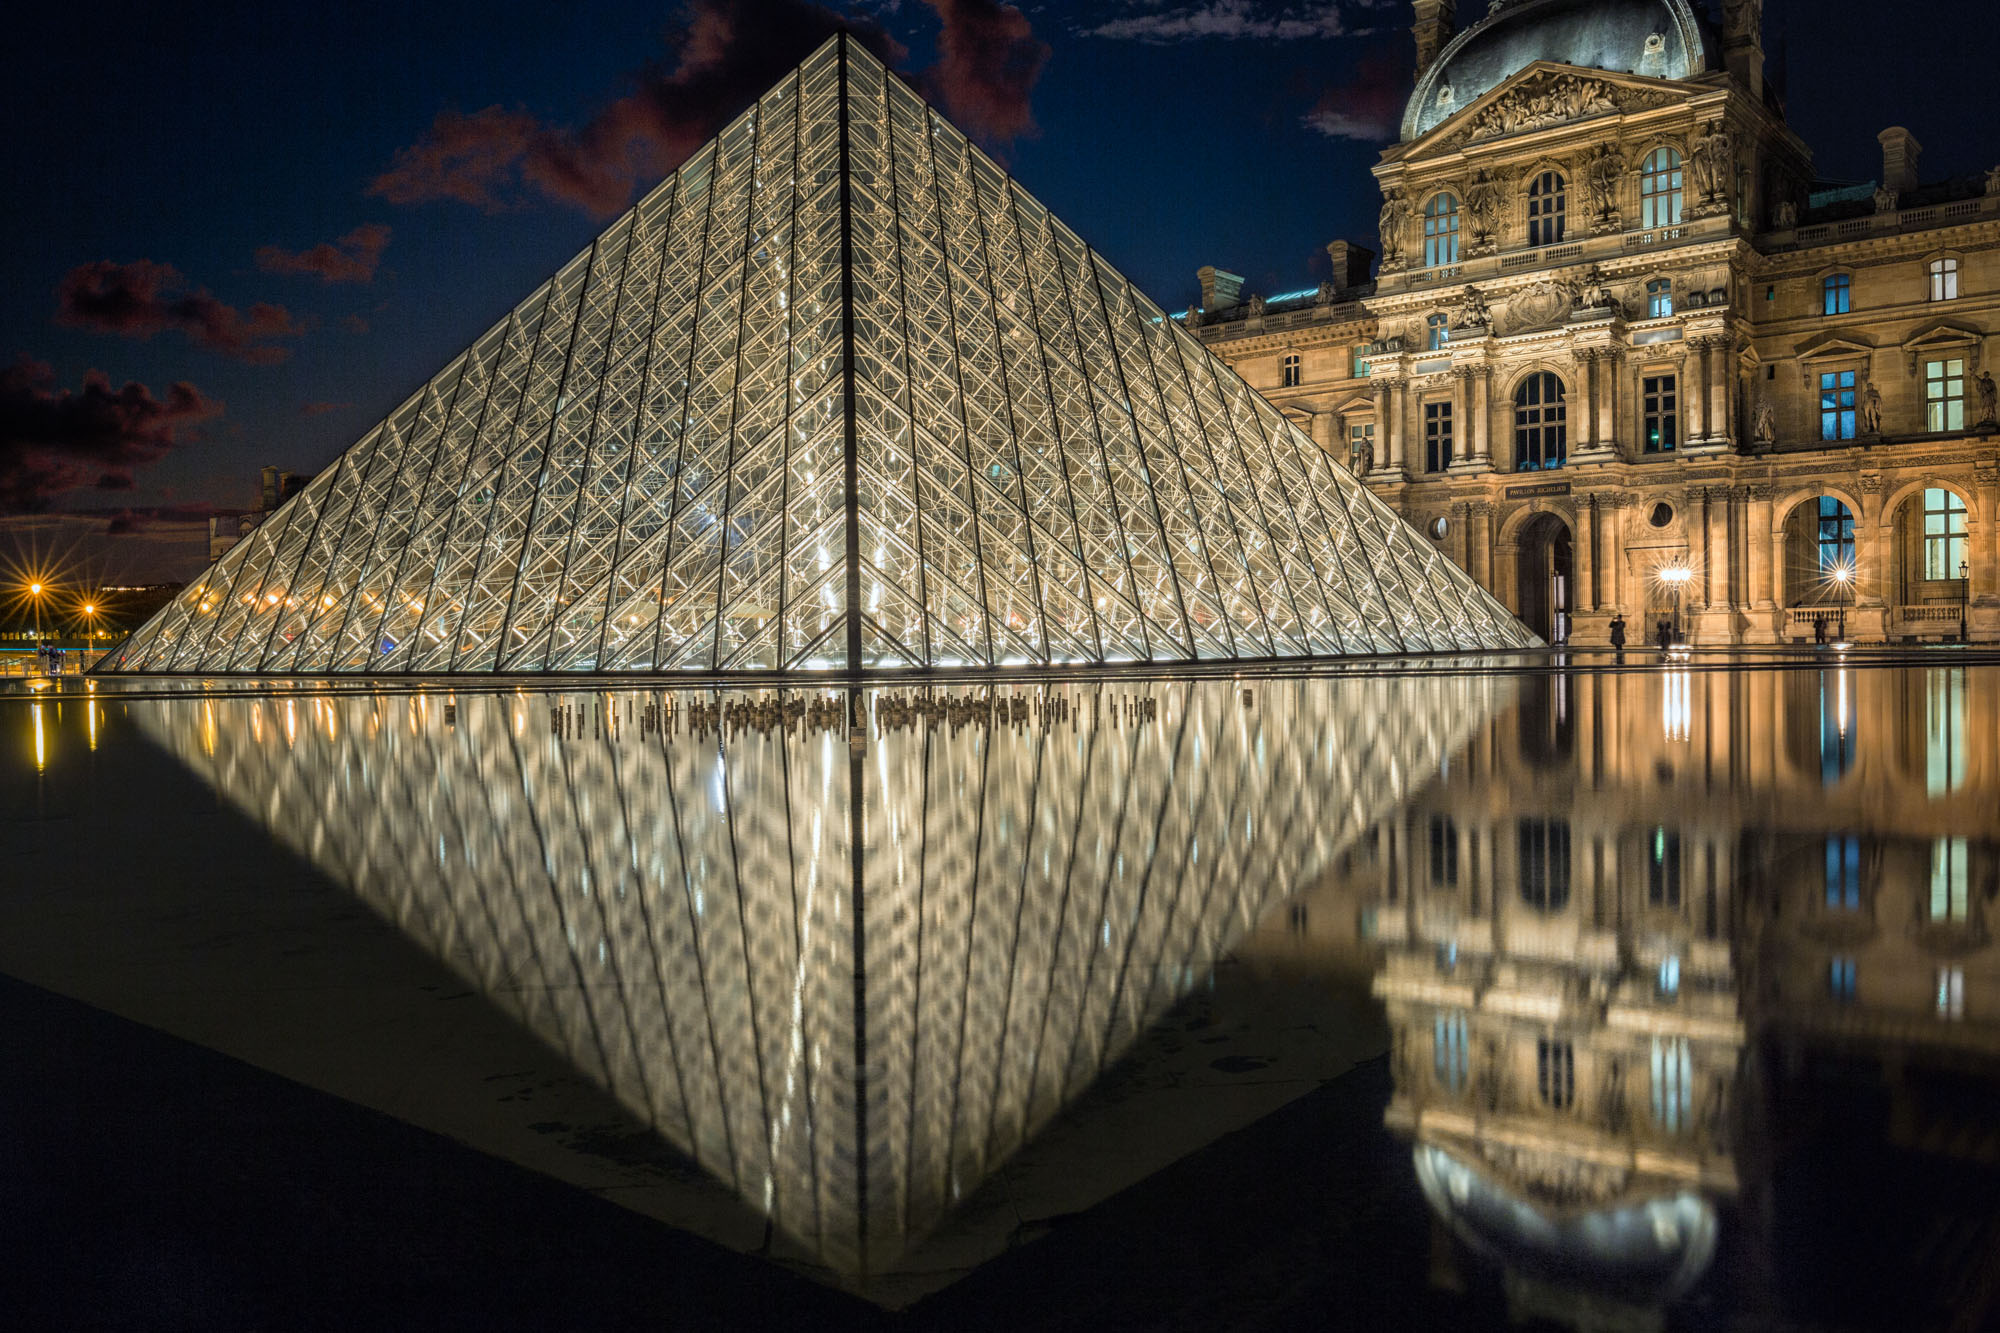 long exposure night photography of the Louvre Museum reflected in water in Paris France